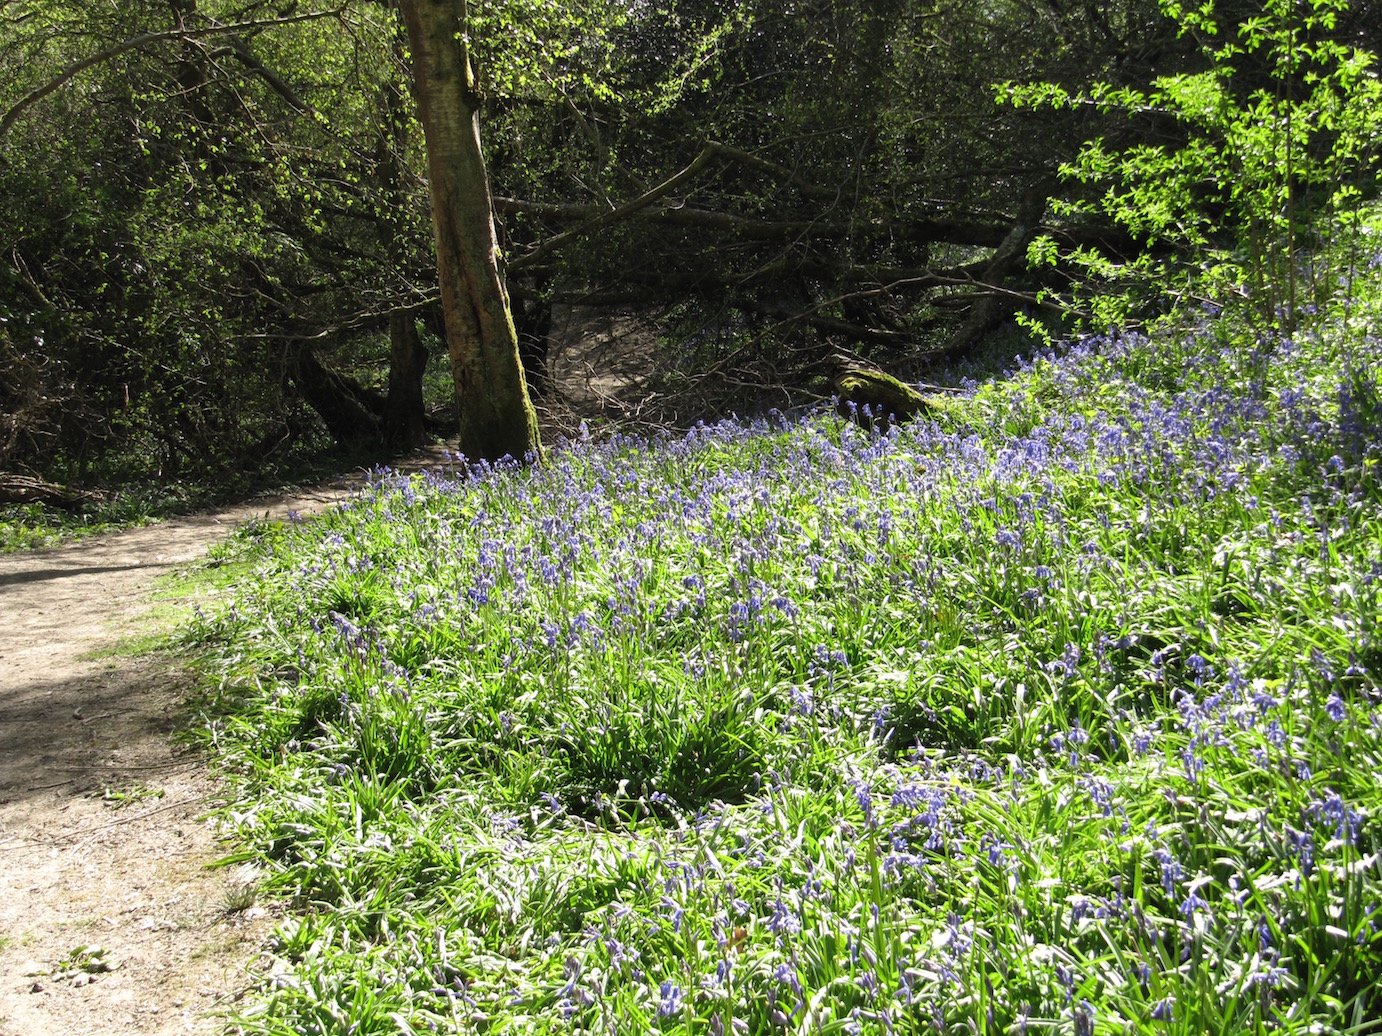 Bluebells on Riverside Walk at Grebe Crescent